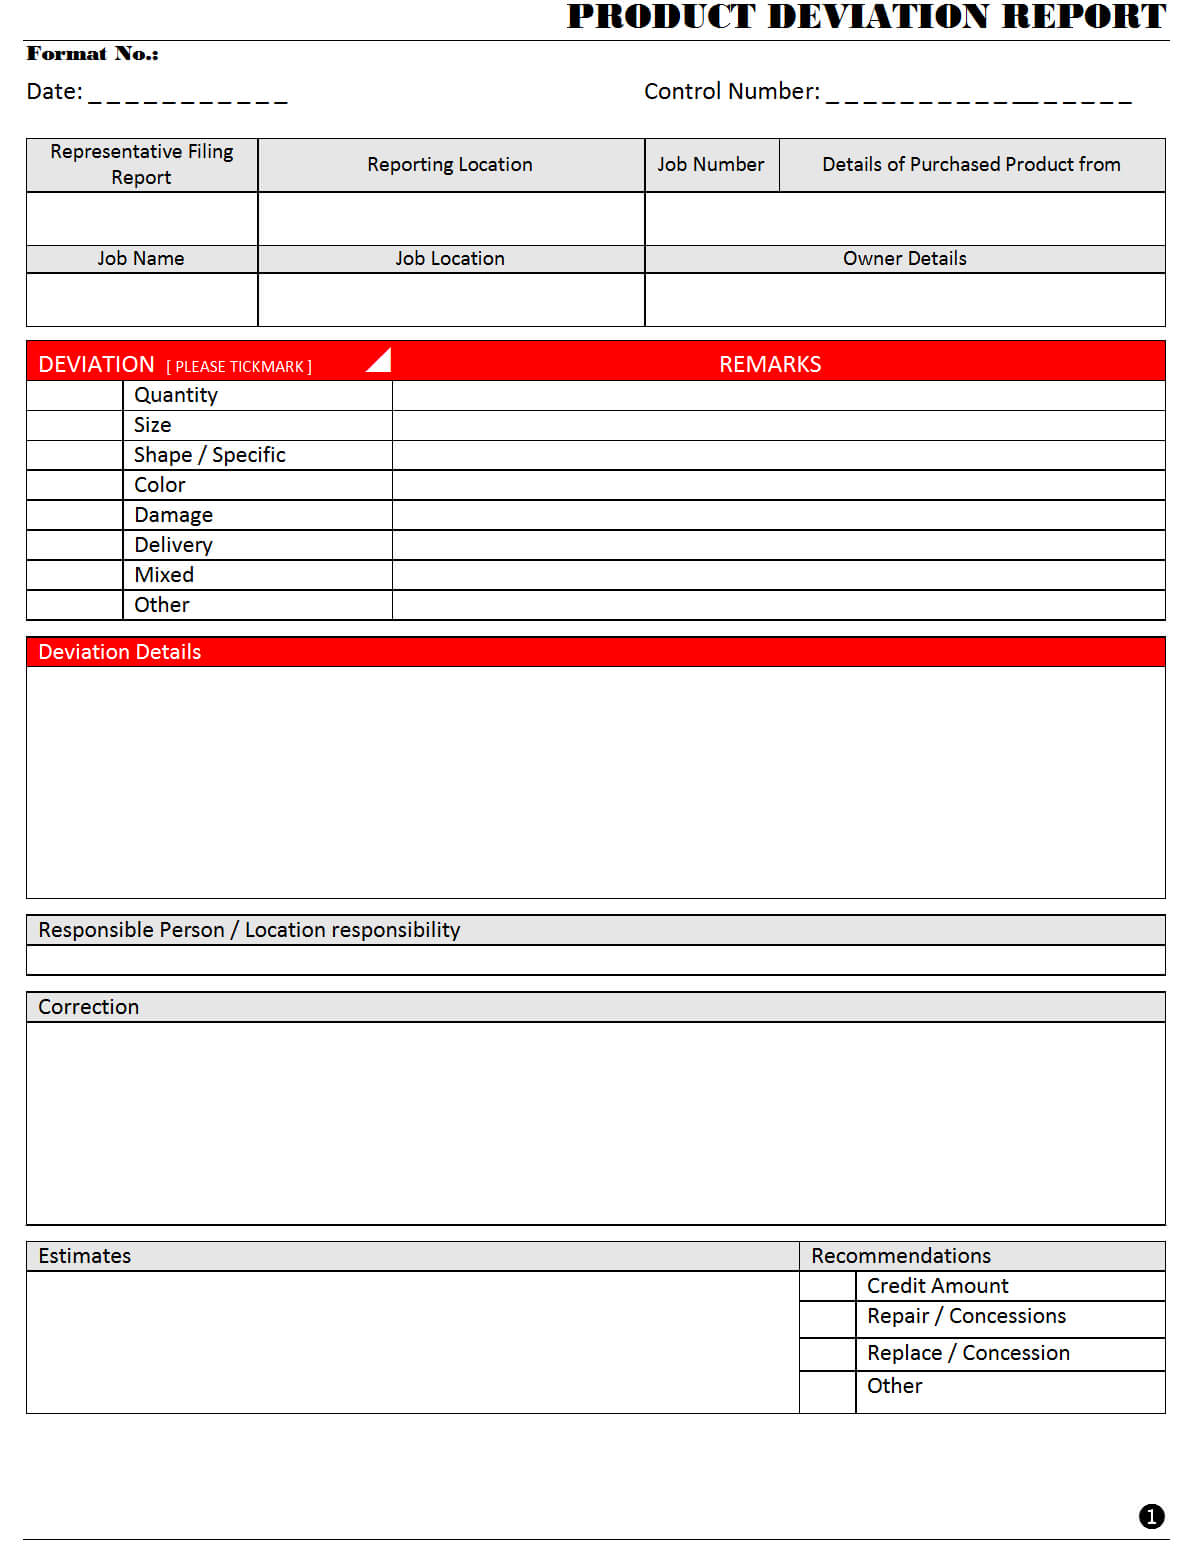 Product Deviation Report - With Deviation Report Template